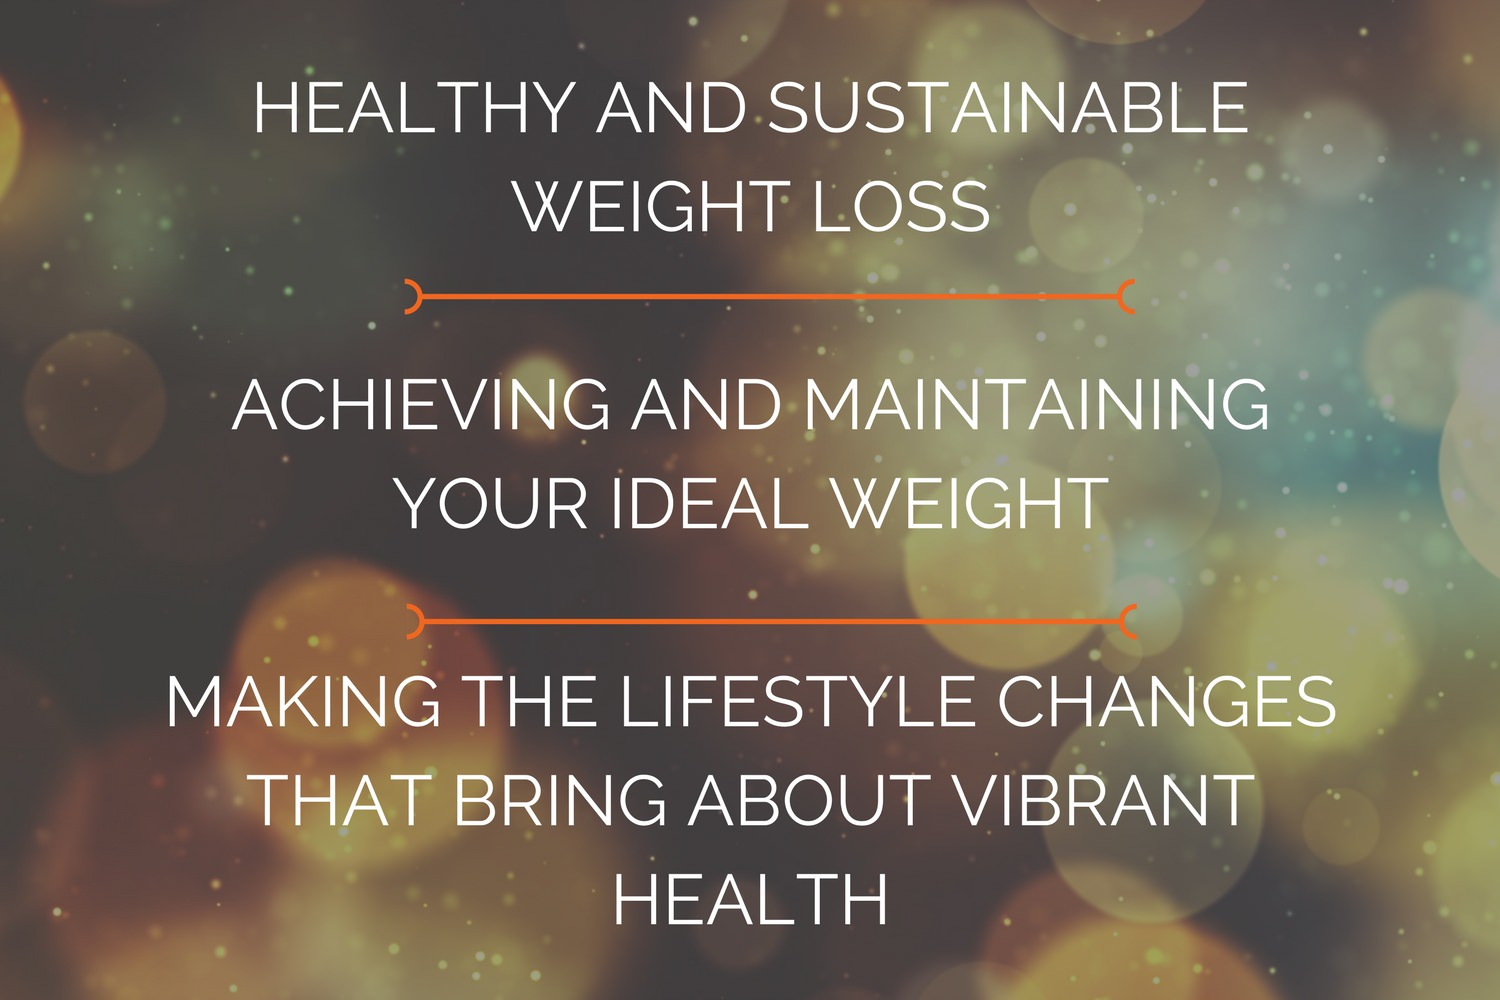 healthy, sustainable, and long-lasting weight loss  achieving and maintaining your ideal weight  making the lifestyle changes that bring about vibrant health!